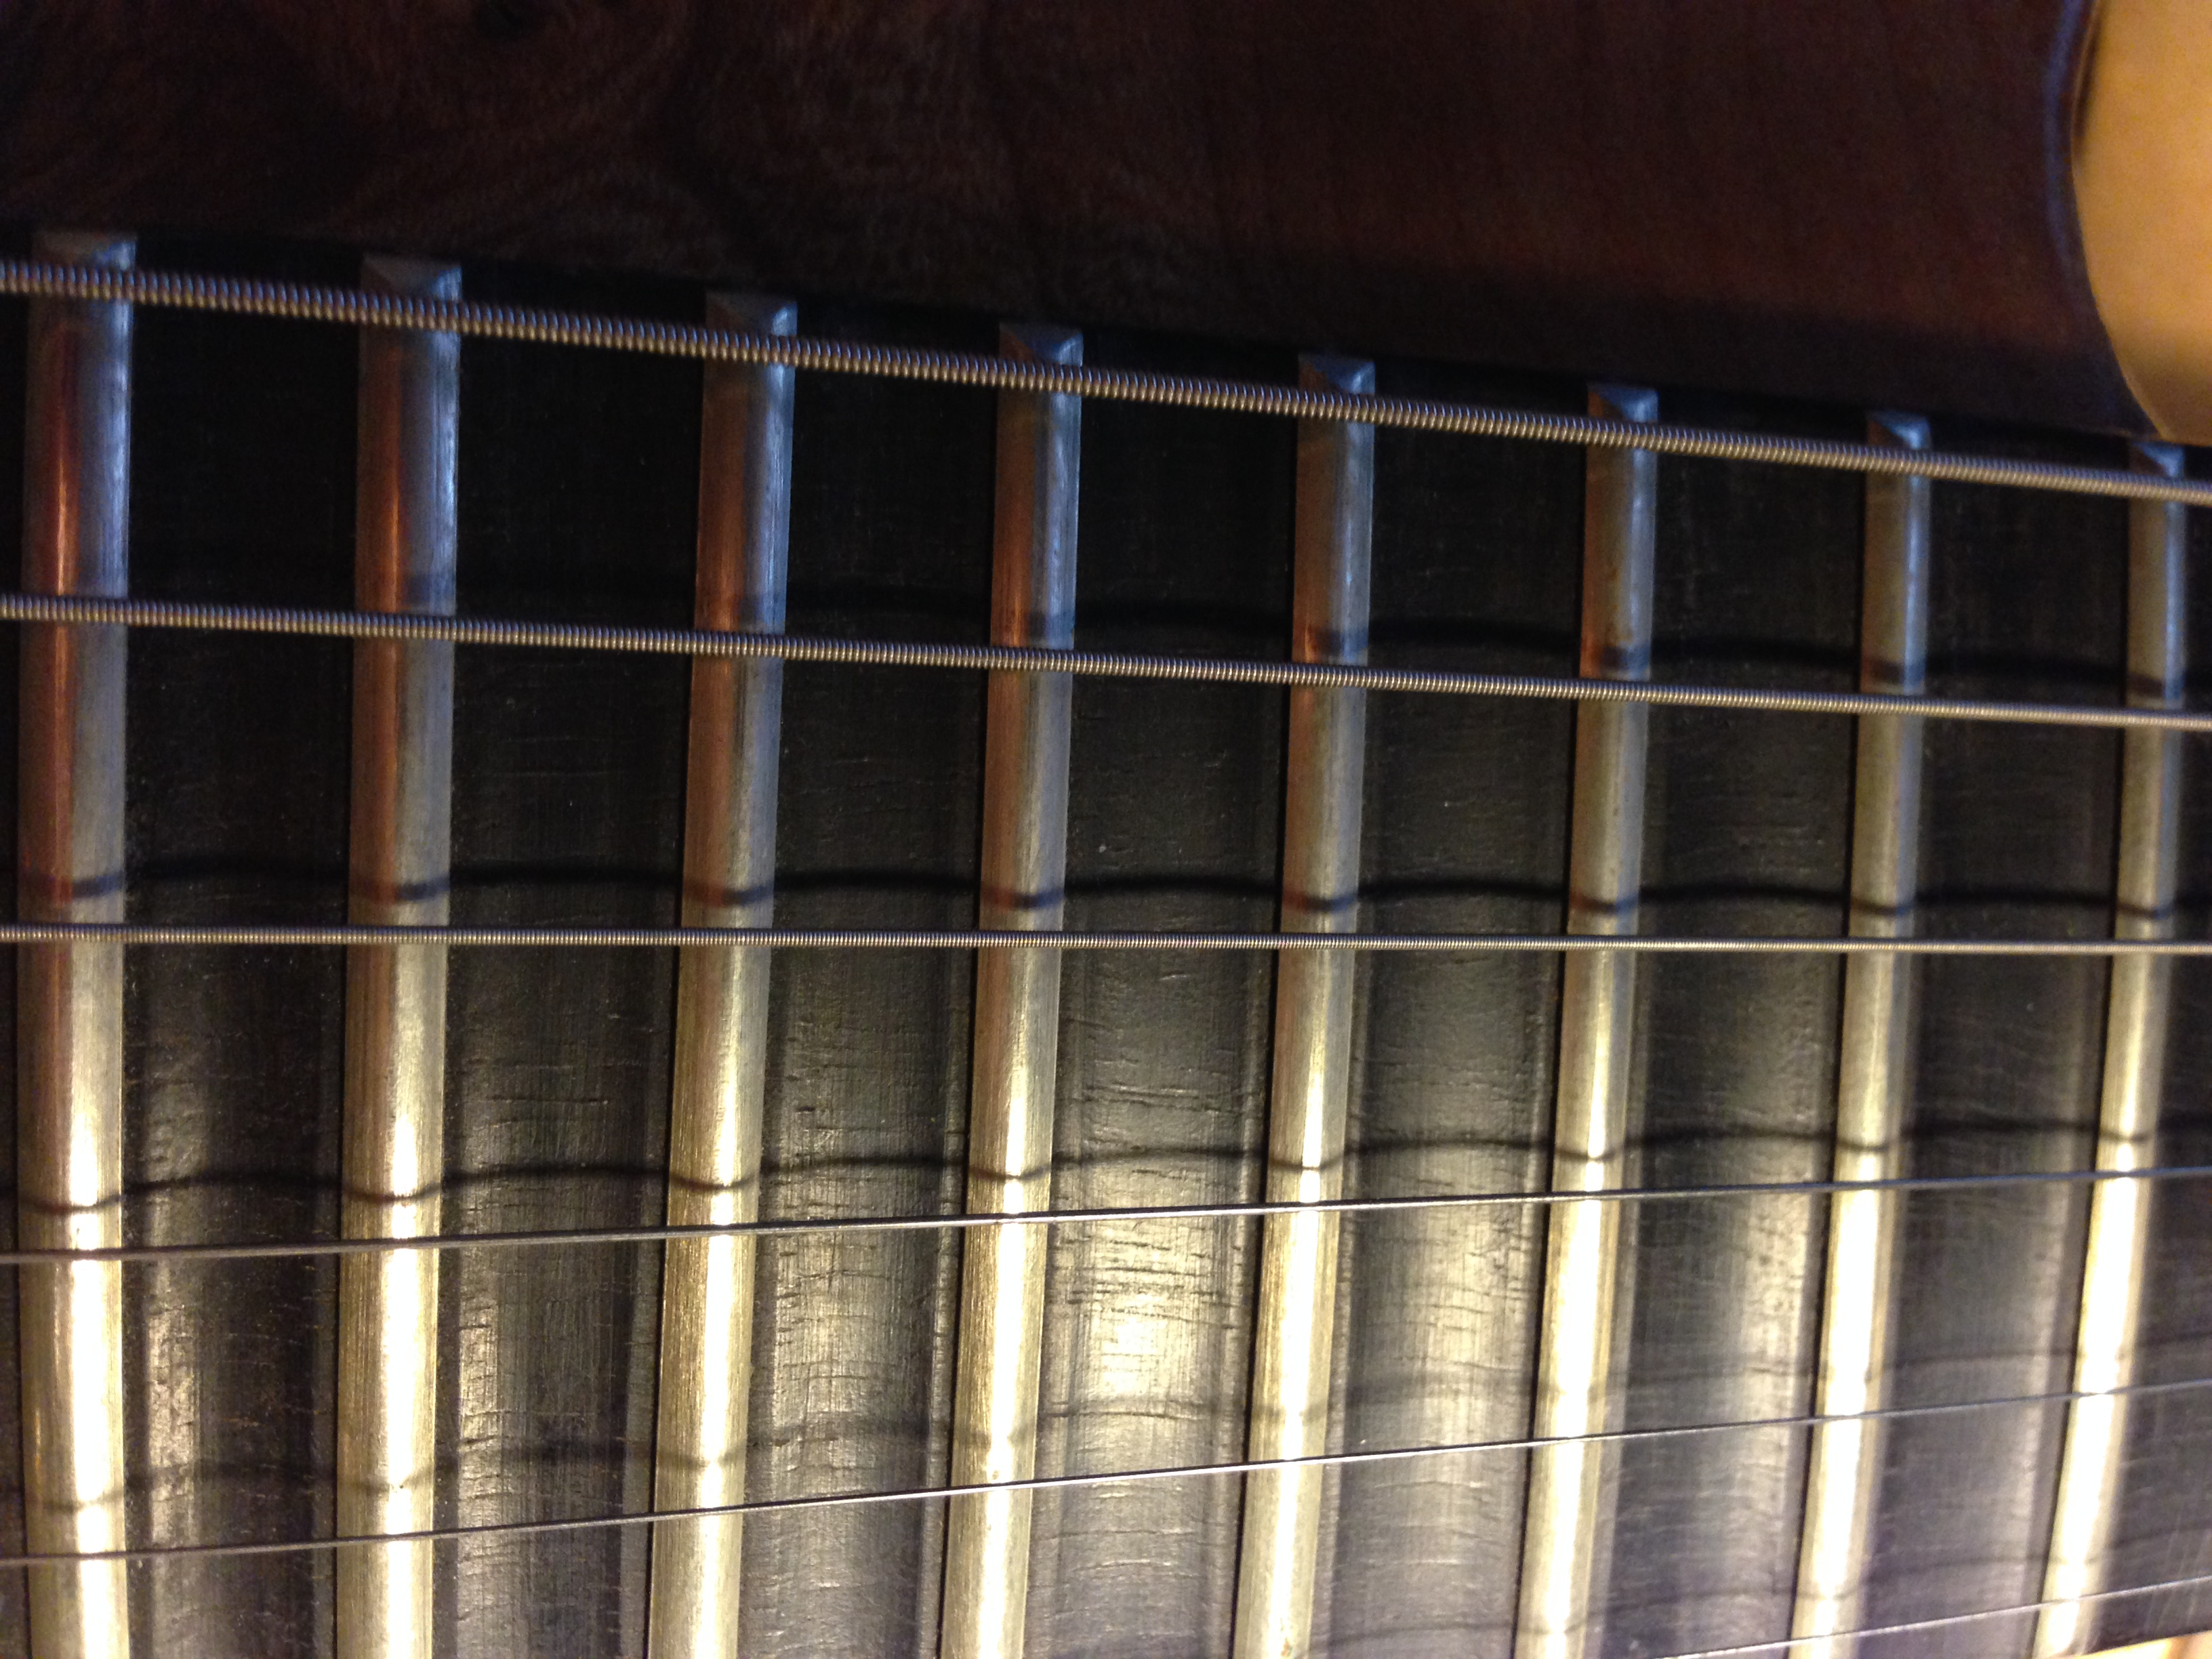 Scalloped ebony fingerboard, gradual increase from the octave to the 24th fret.